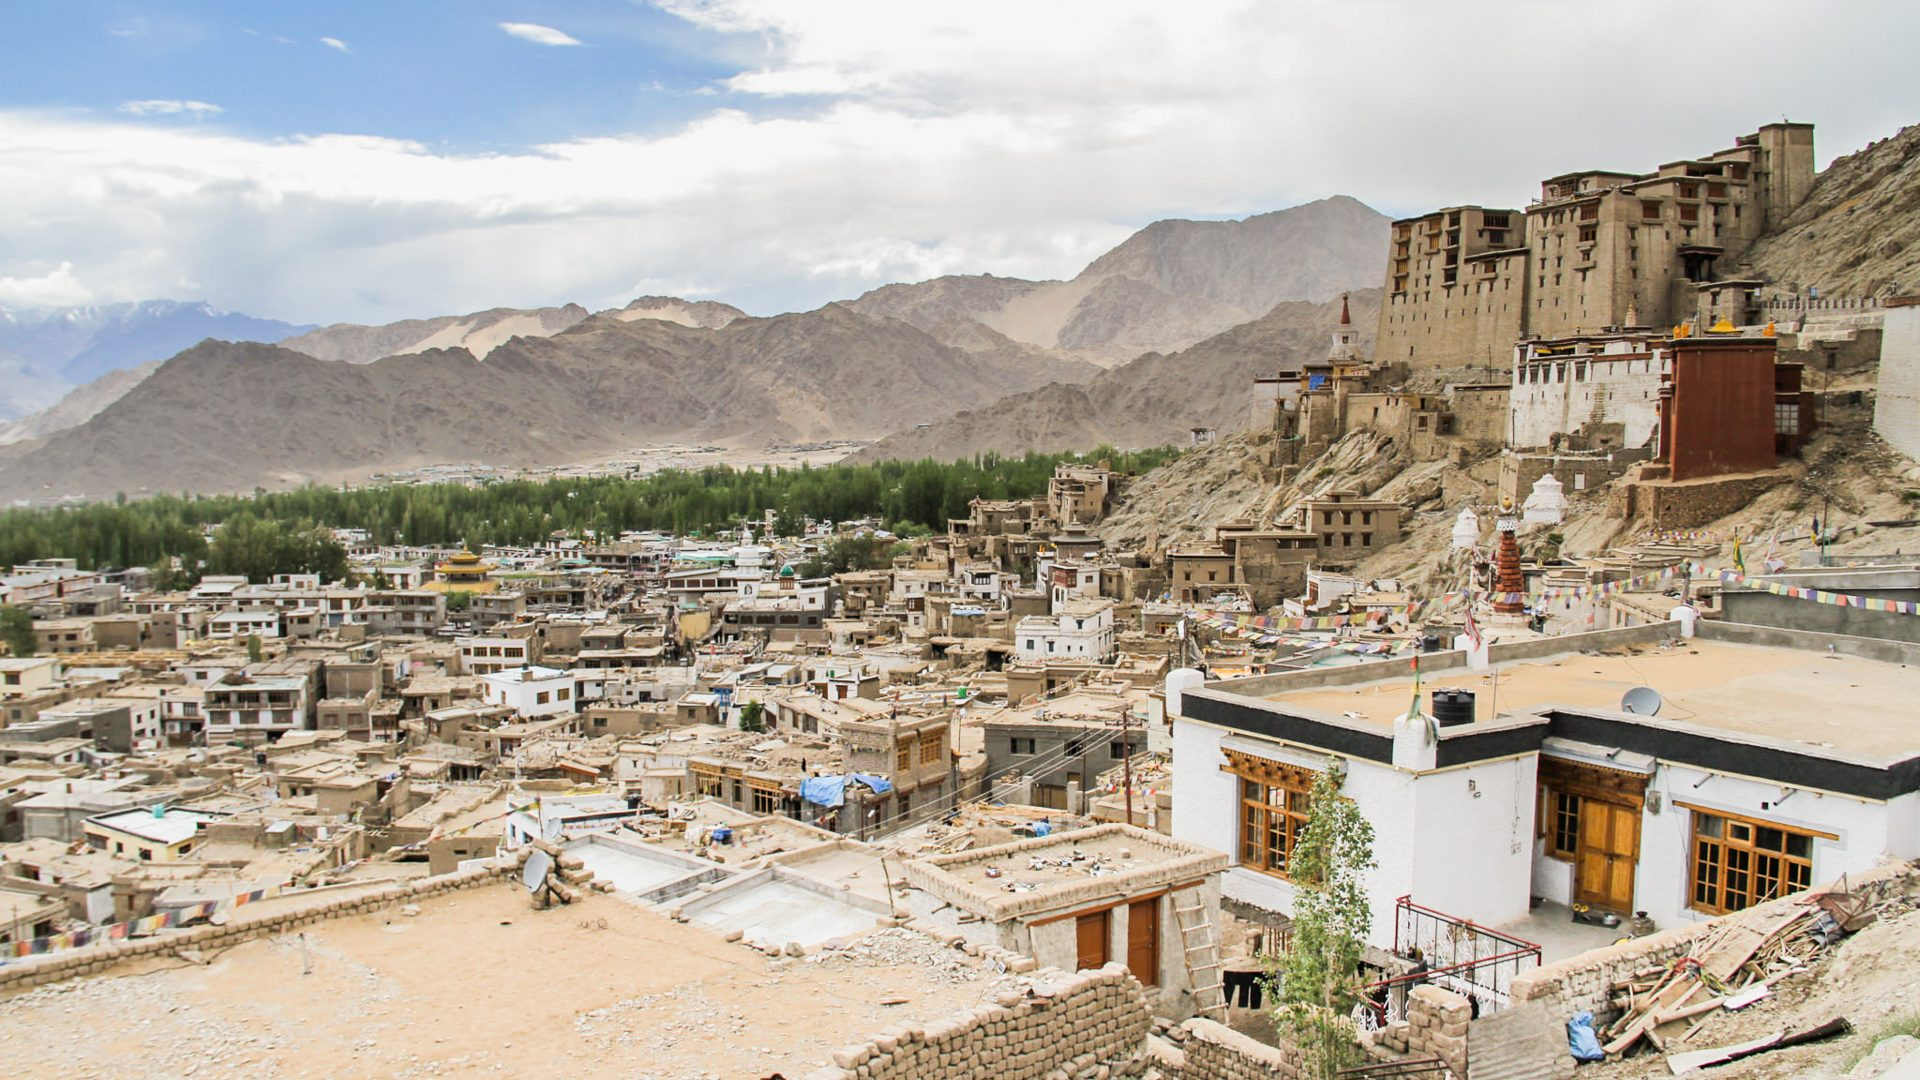 Hidden of Leh in the remote Himalayan region of Ladakh.